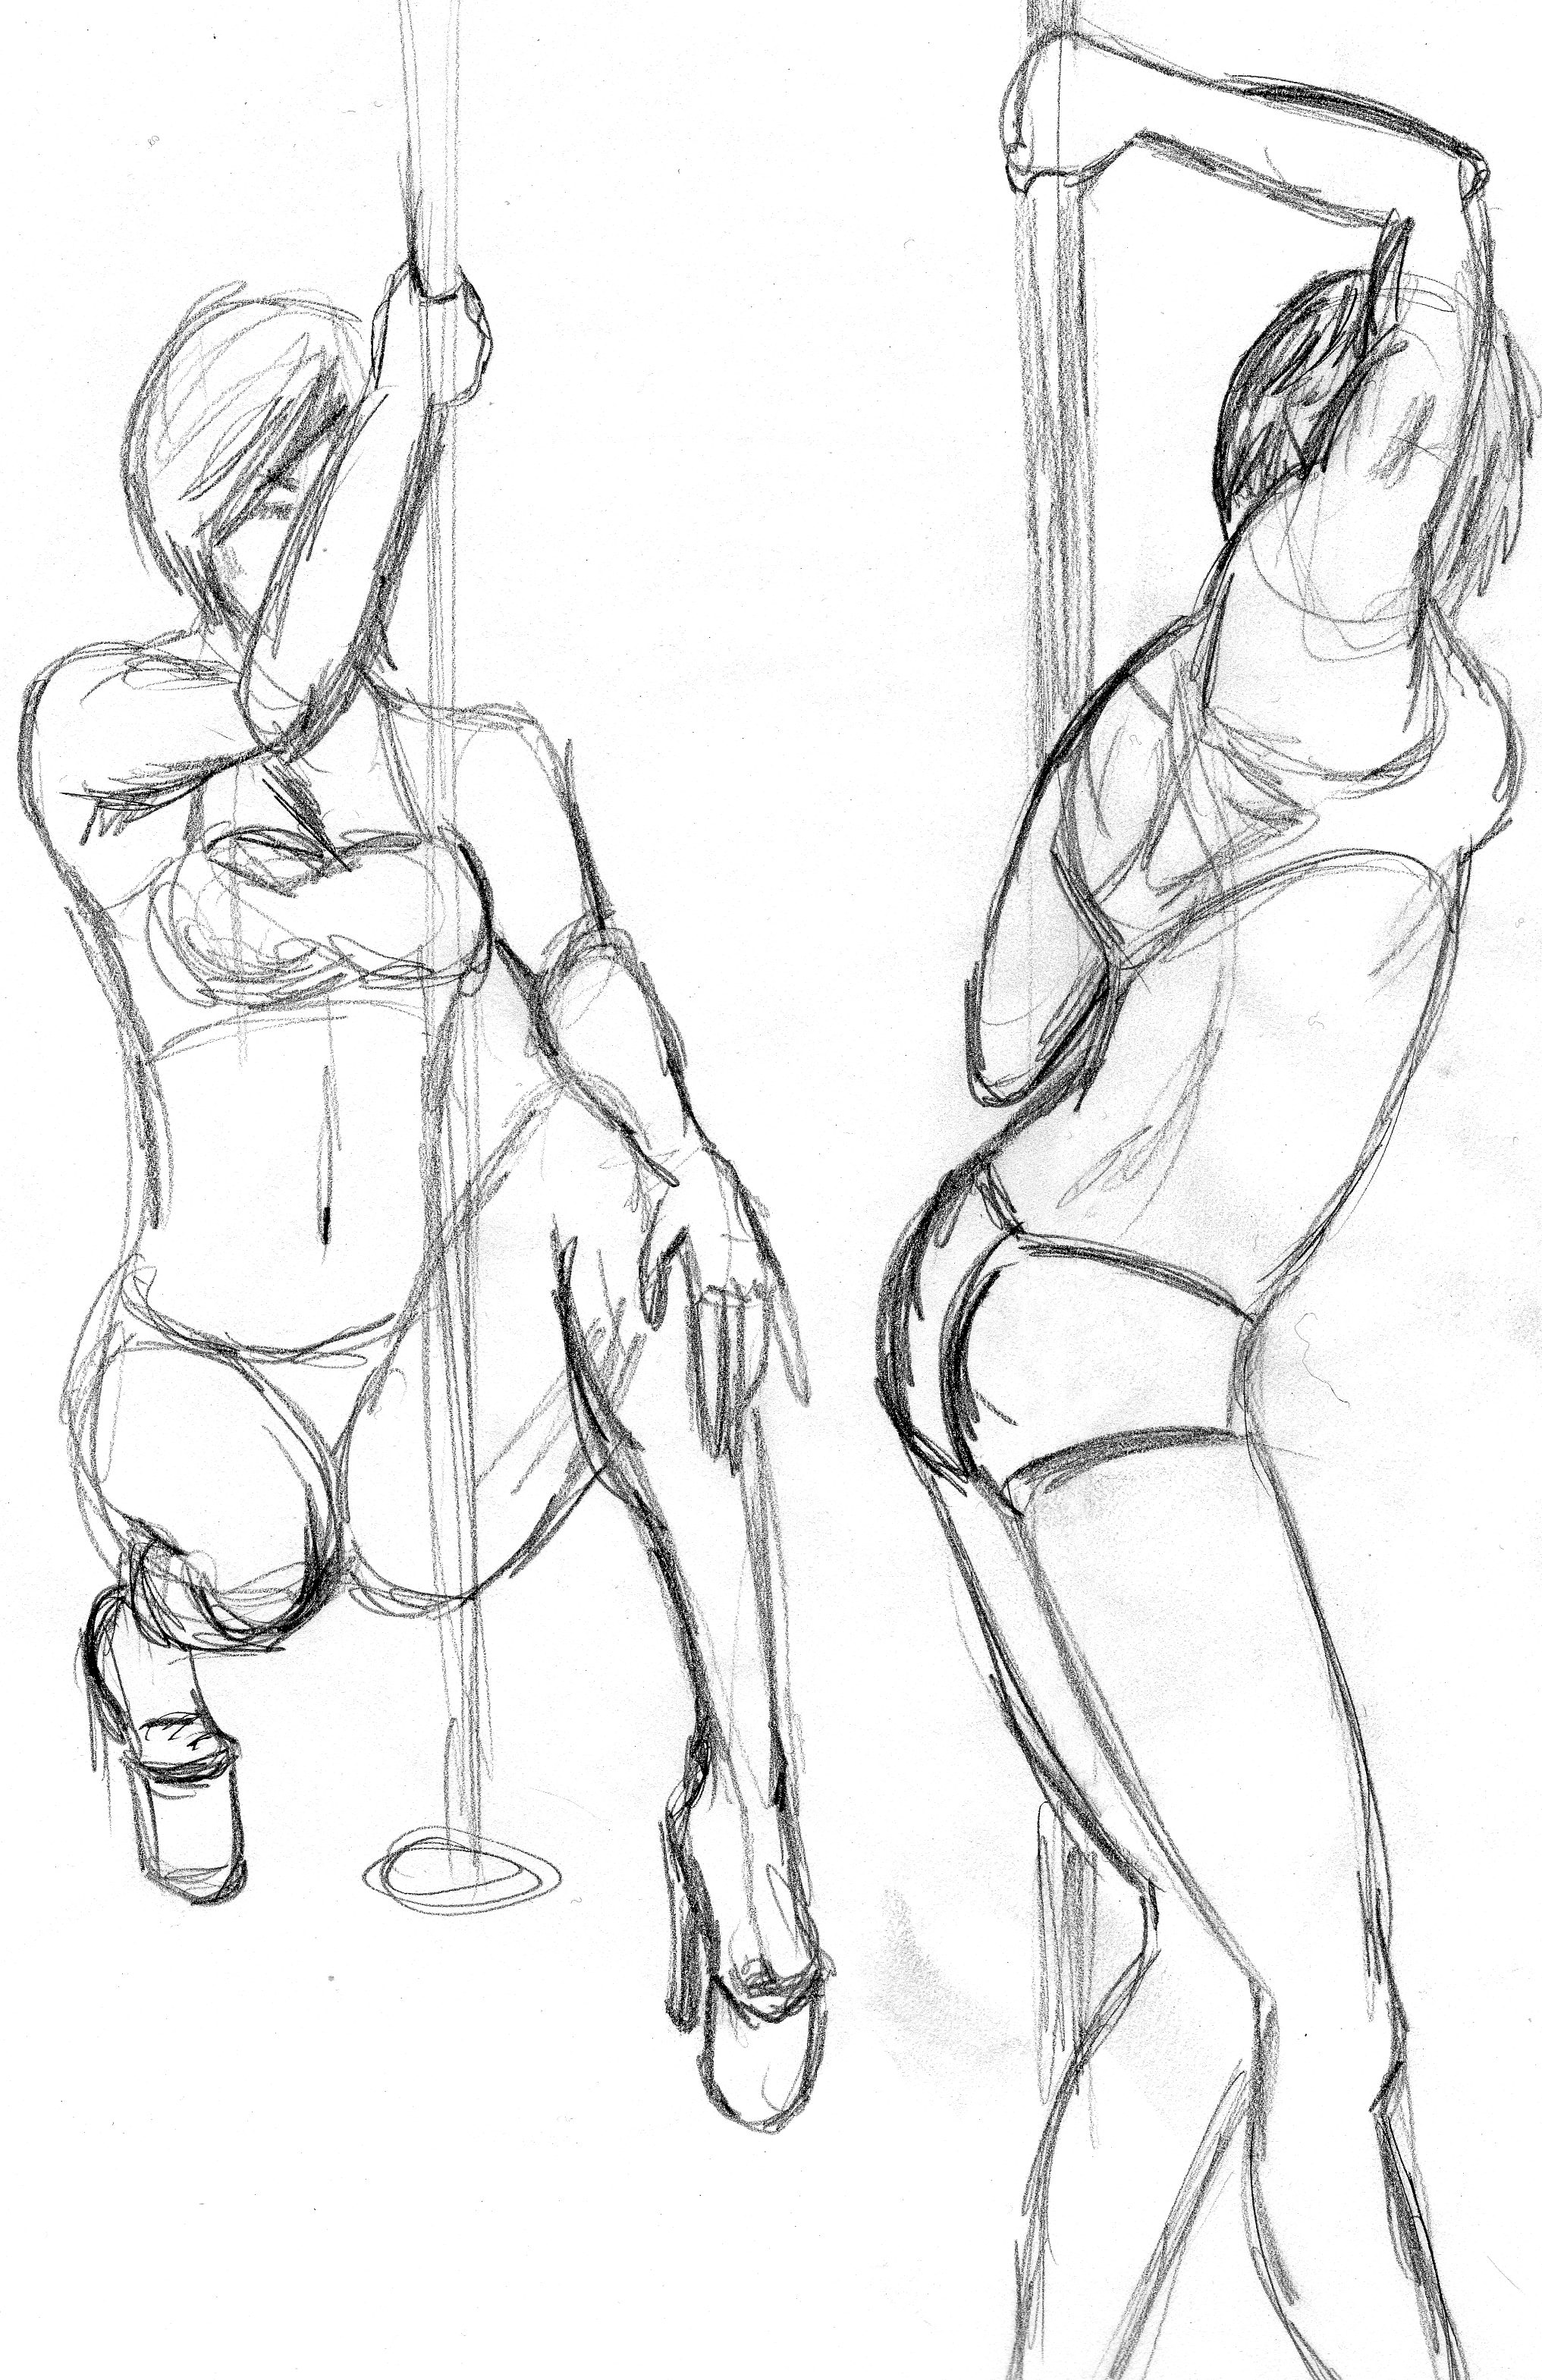 Pole - Pencil Sketch